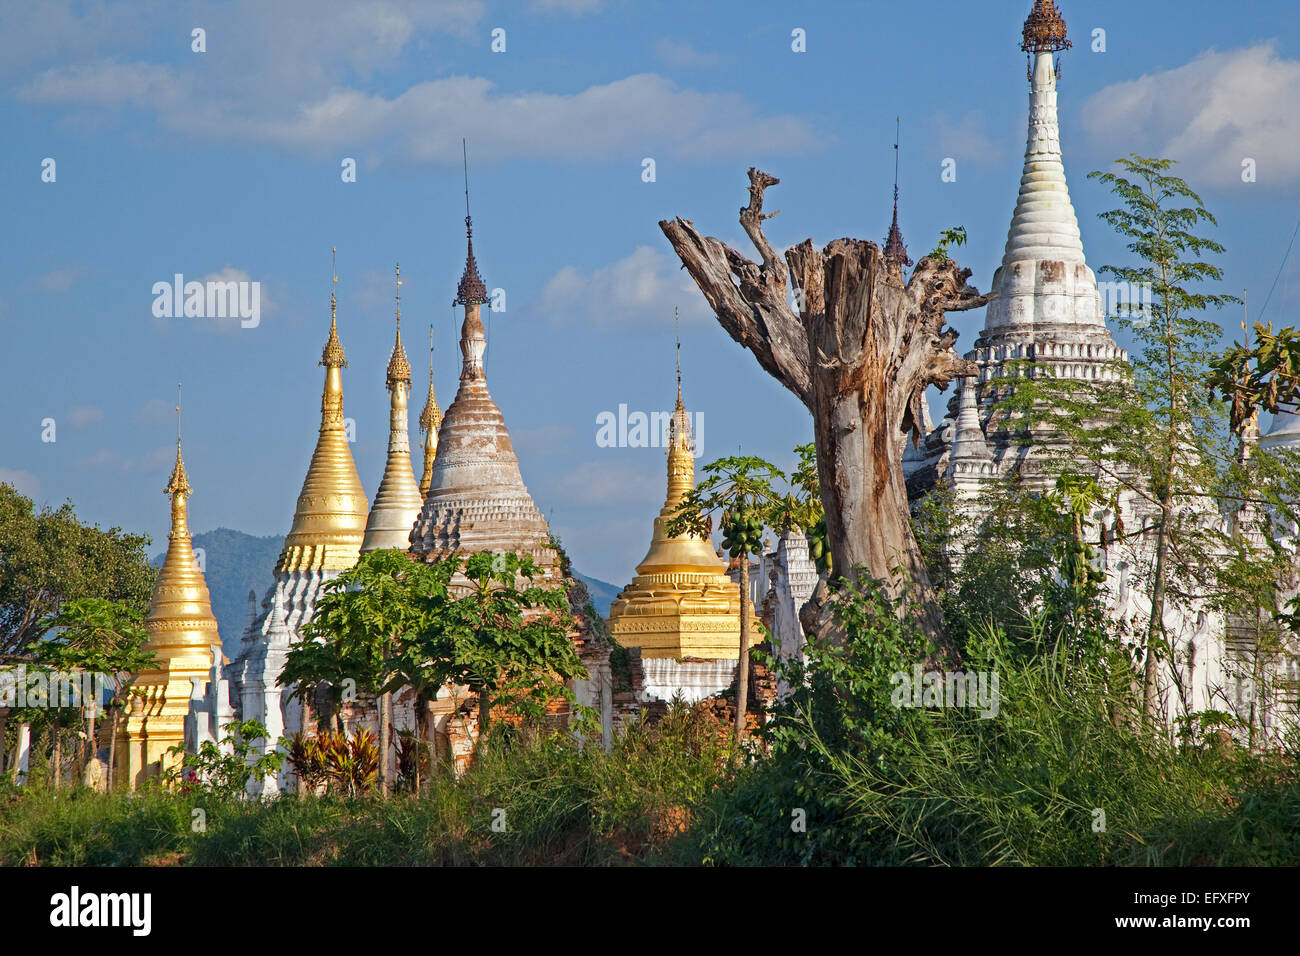 Golden and white Buddhist Stupas on the shore along Inle Lake, Nyaungshwe, Shan State, Myanmar / Burma - Stock Image